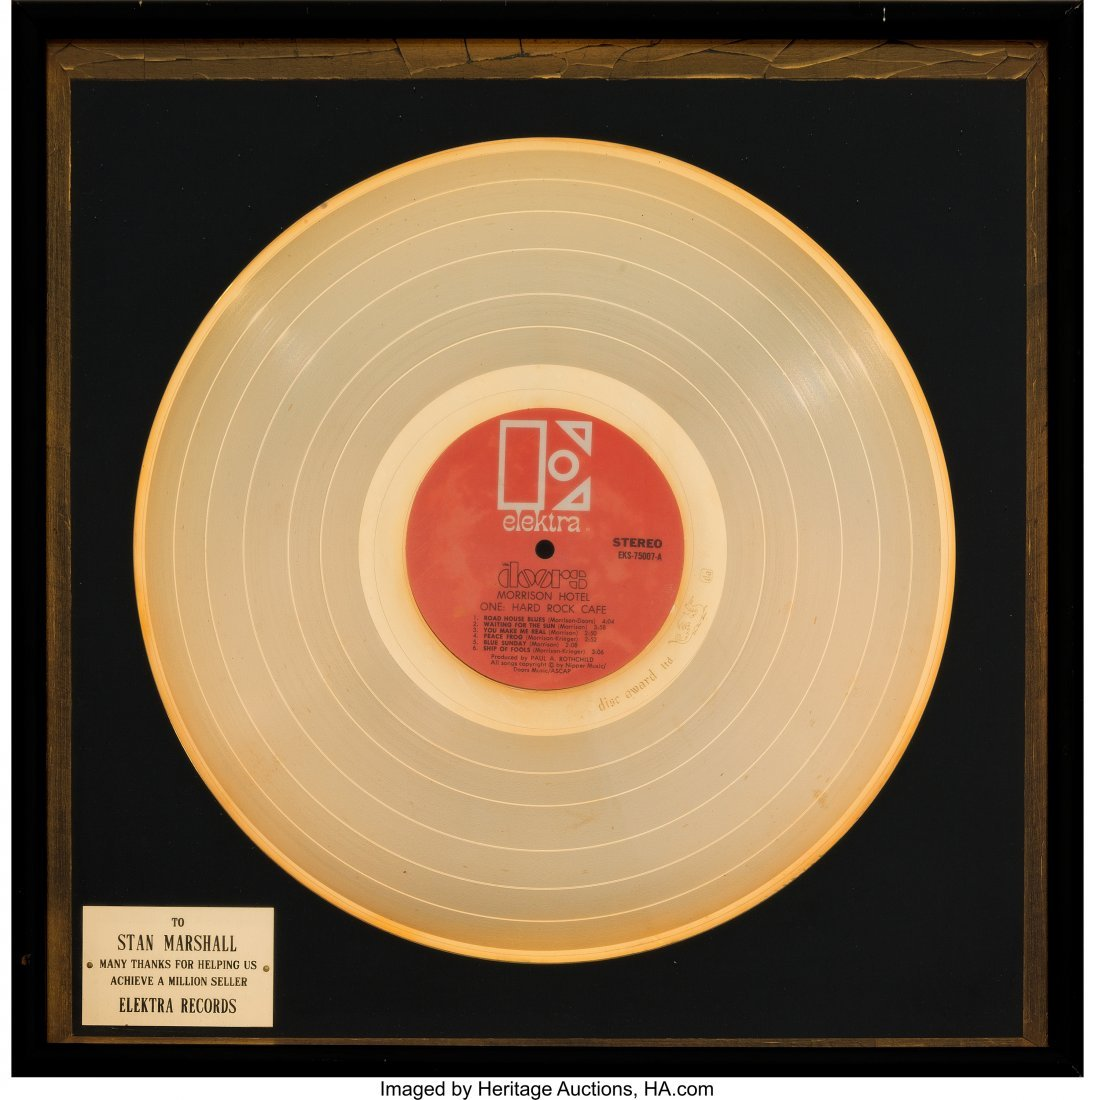 89505: Doors Morrison Hotel In-House Gold Record Sales